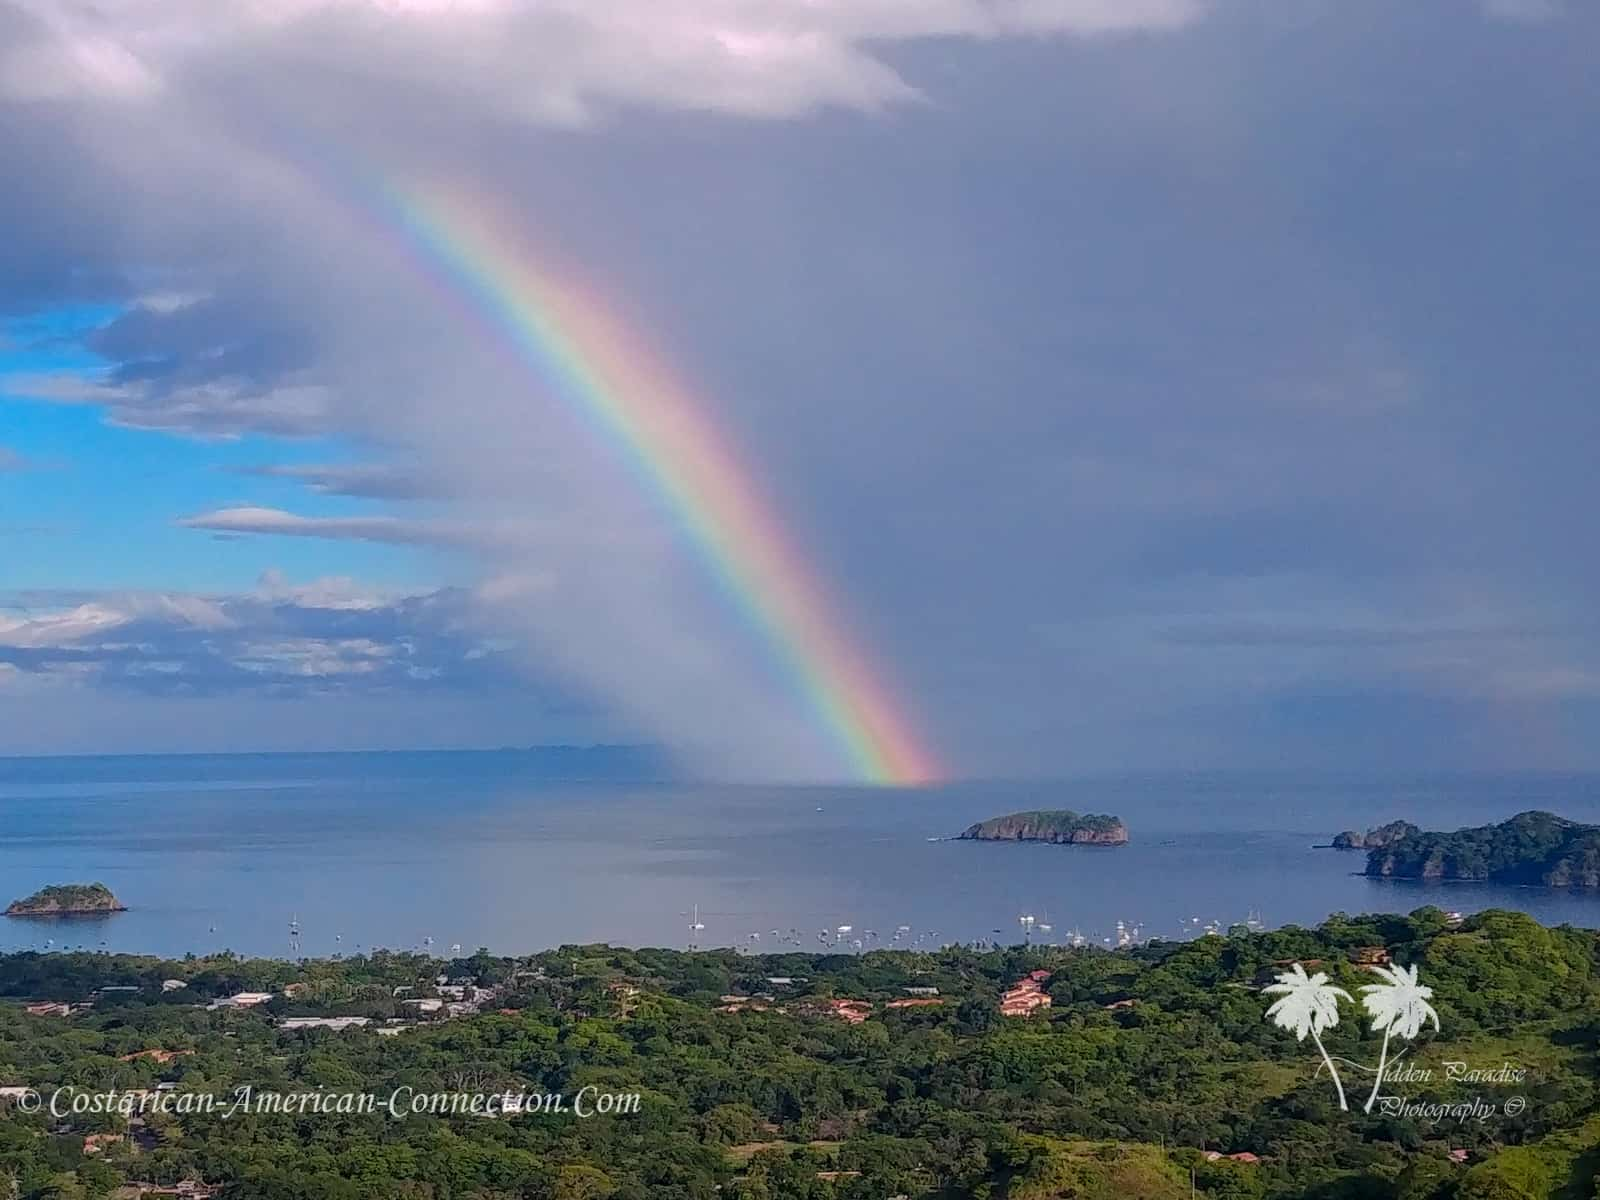 Rainbow over the Pacific Ocean in Guanacaste